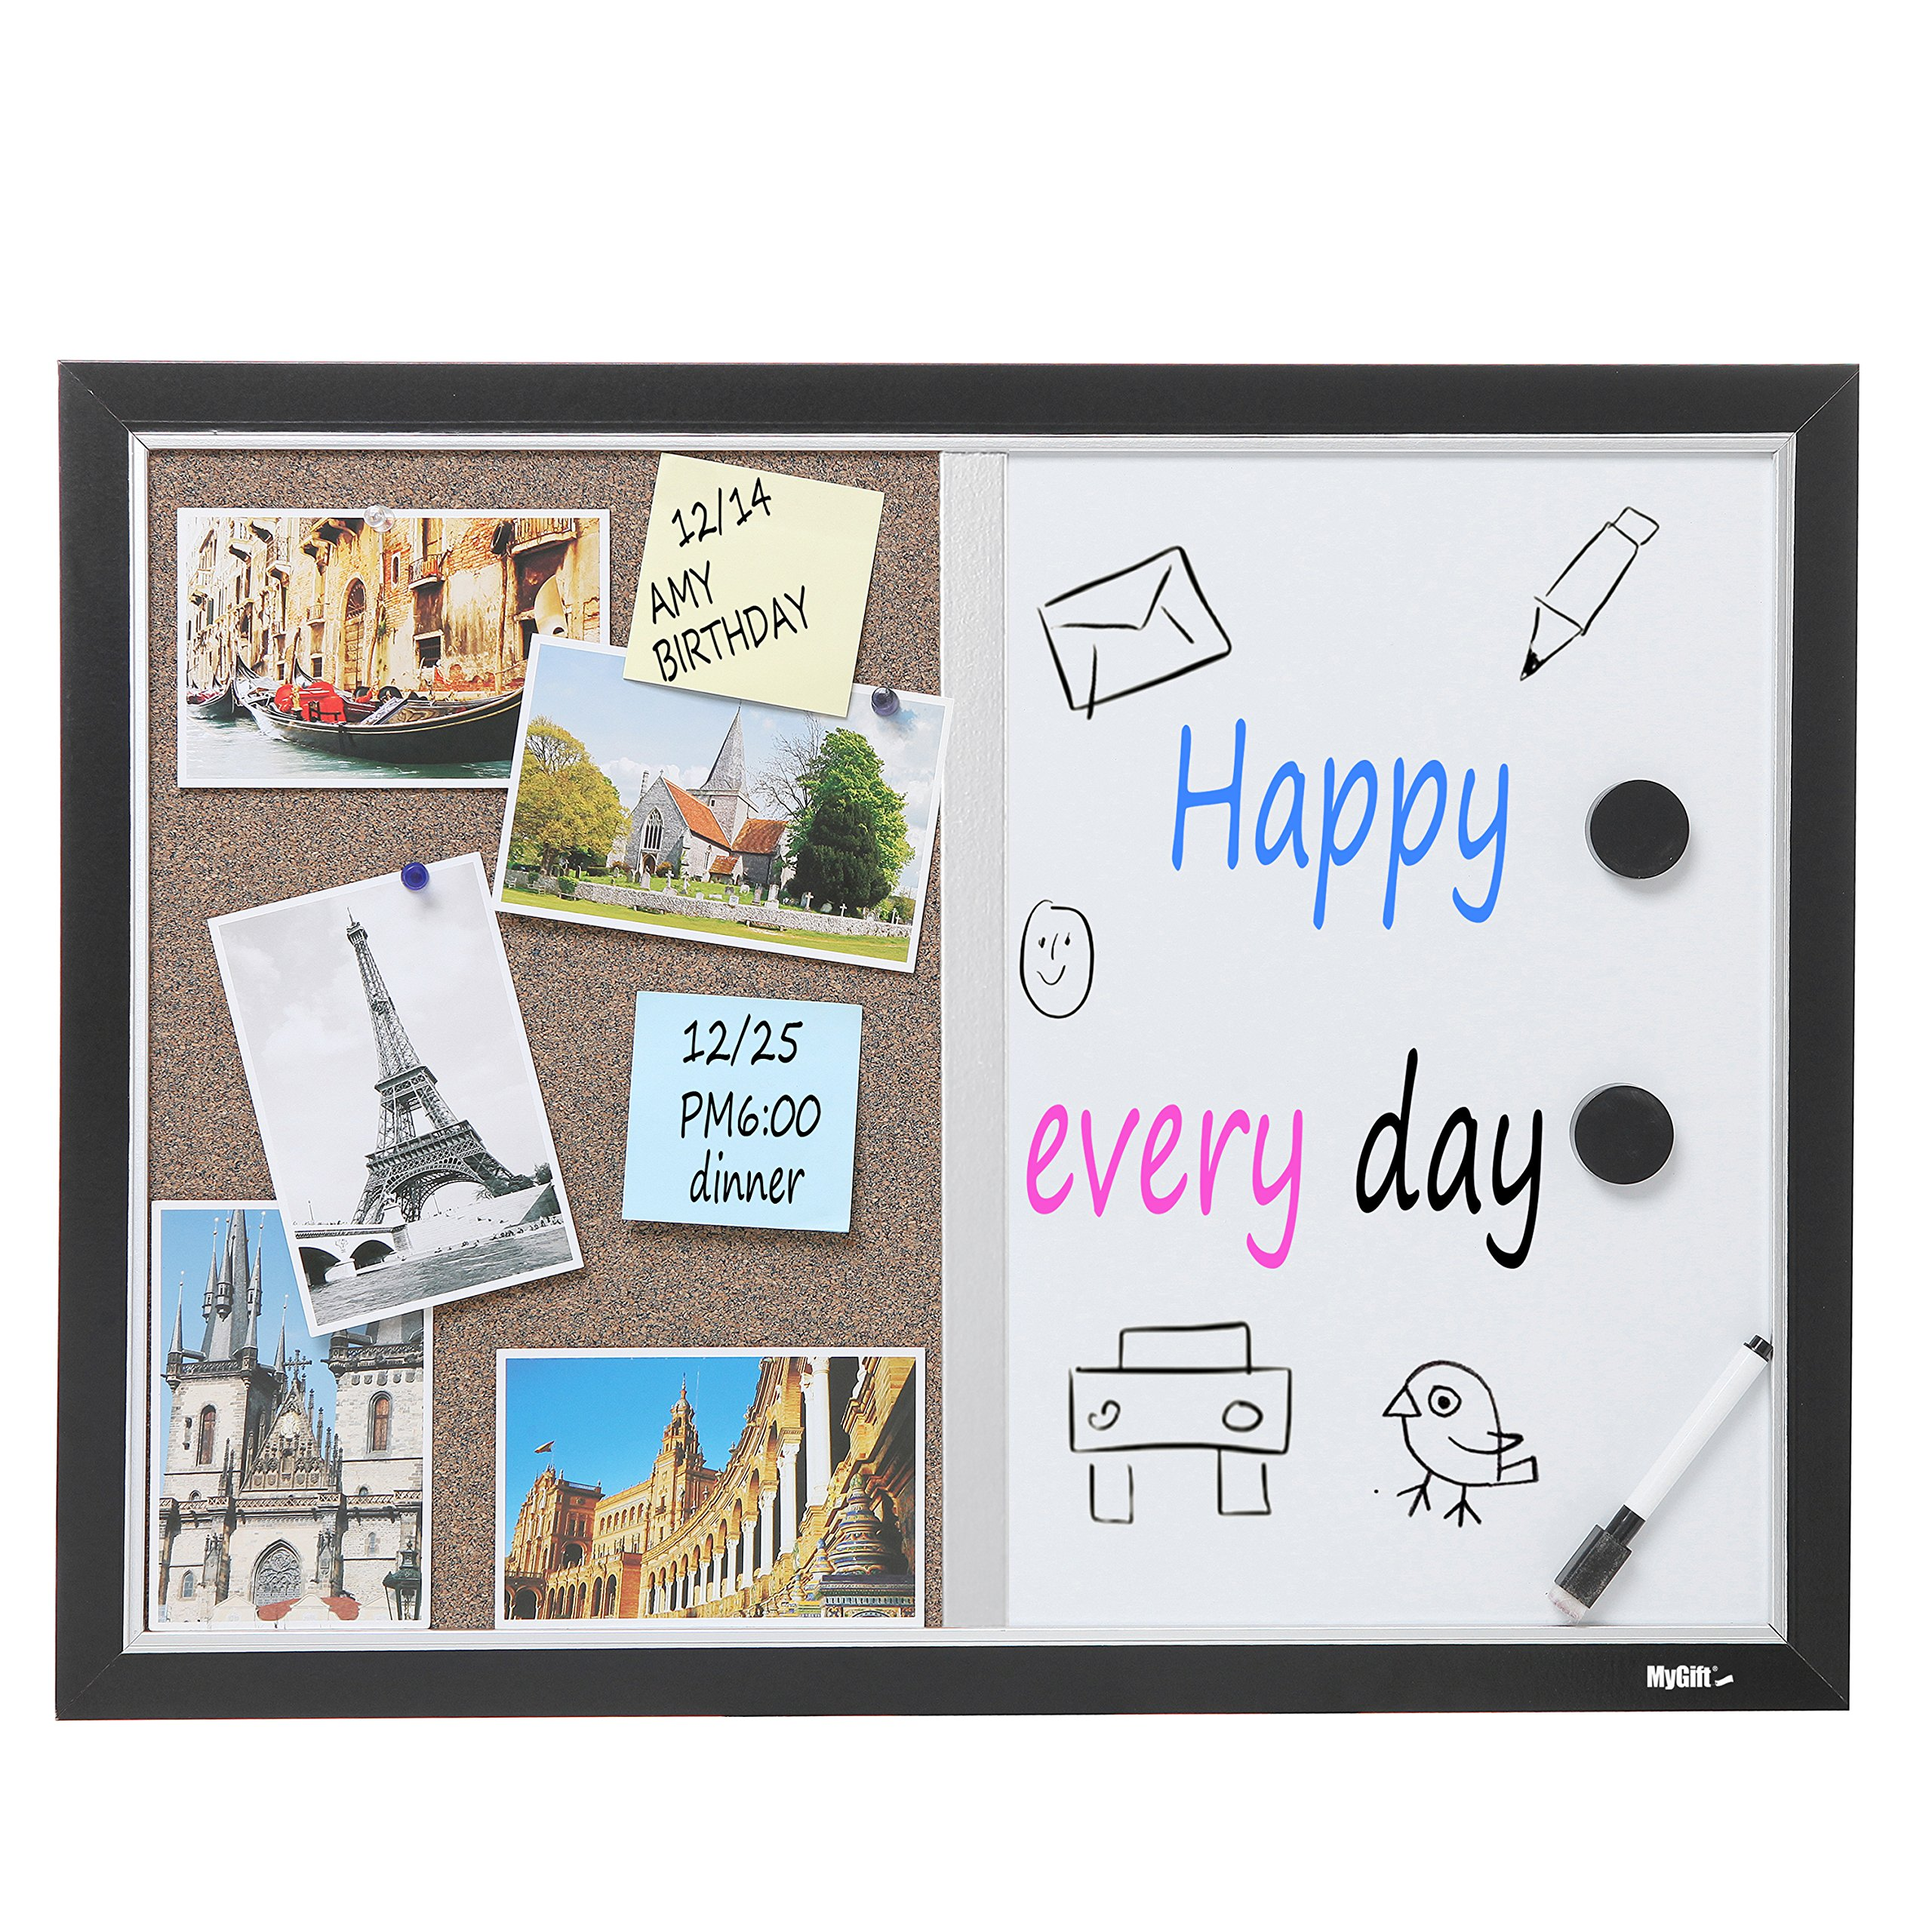 2-in-1 Black Wood Framed Wall Mounted Combination Bulletin Cork Board & Magnetic Whiteboard - MyGift